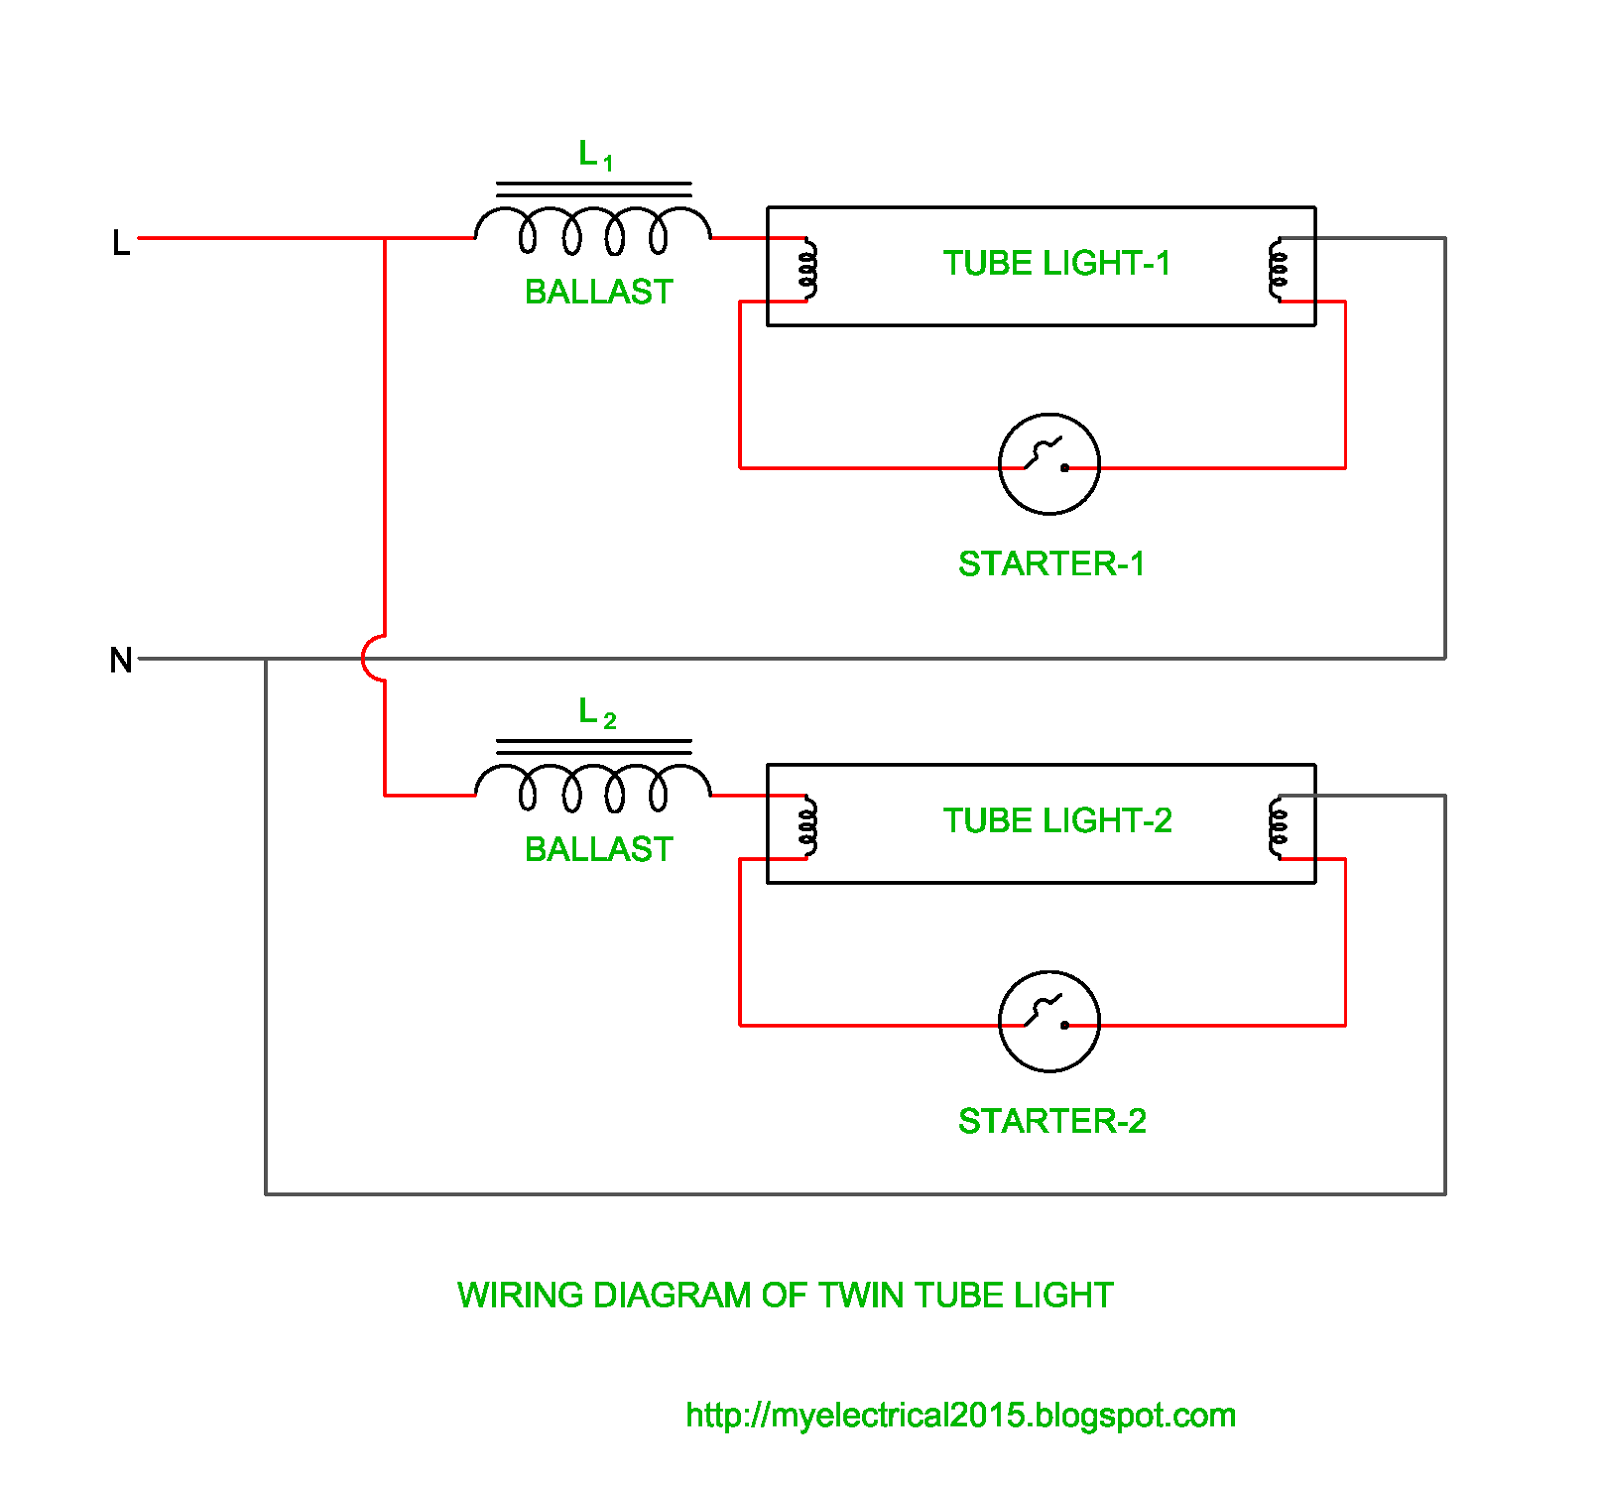 Wiring Diagram Lighting Tool Of Twin Tube Light